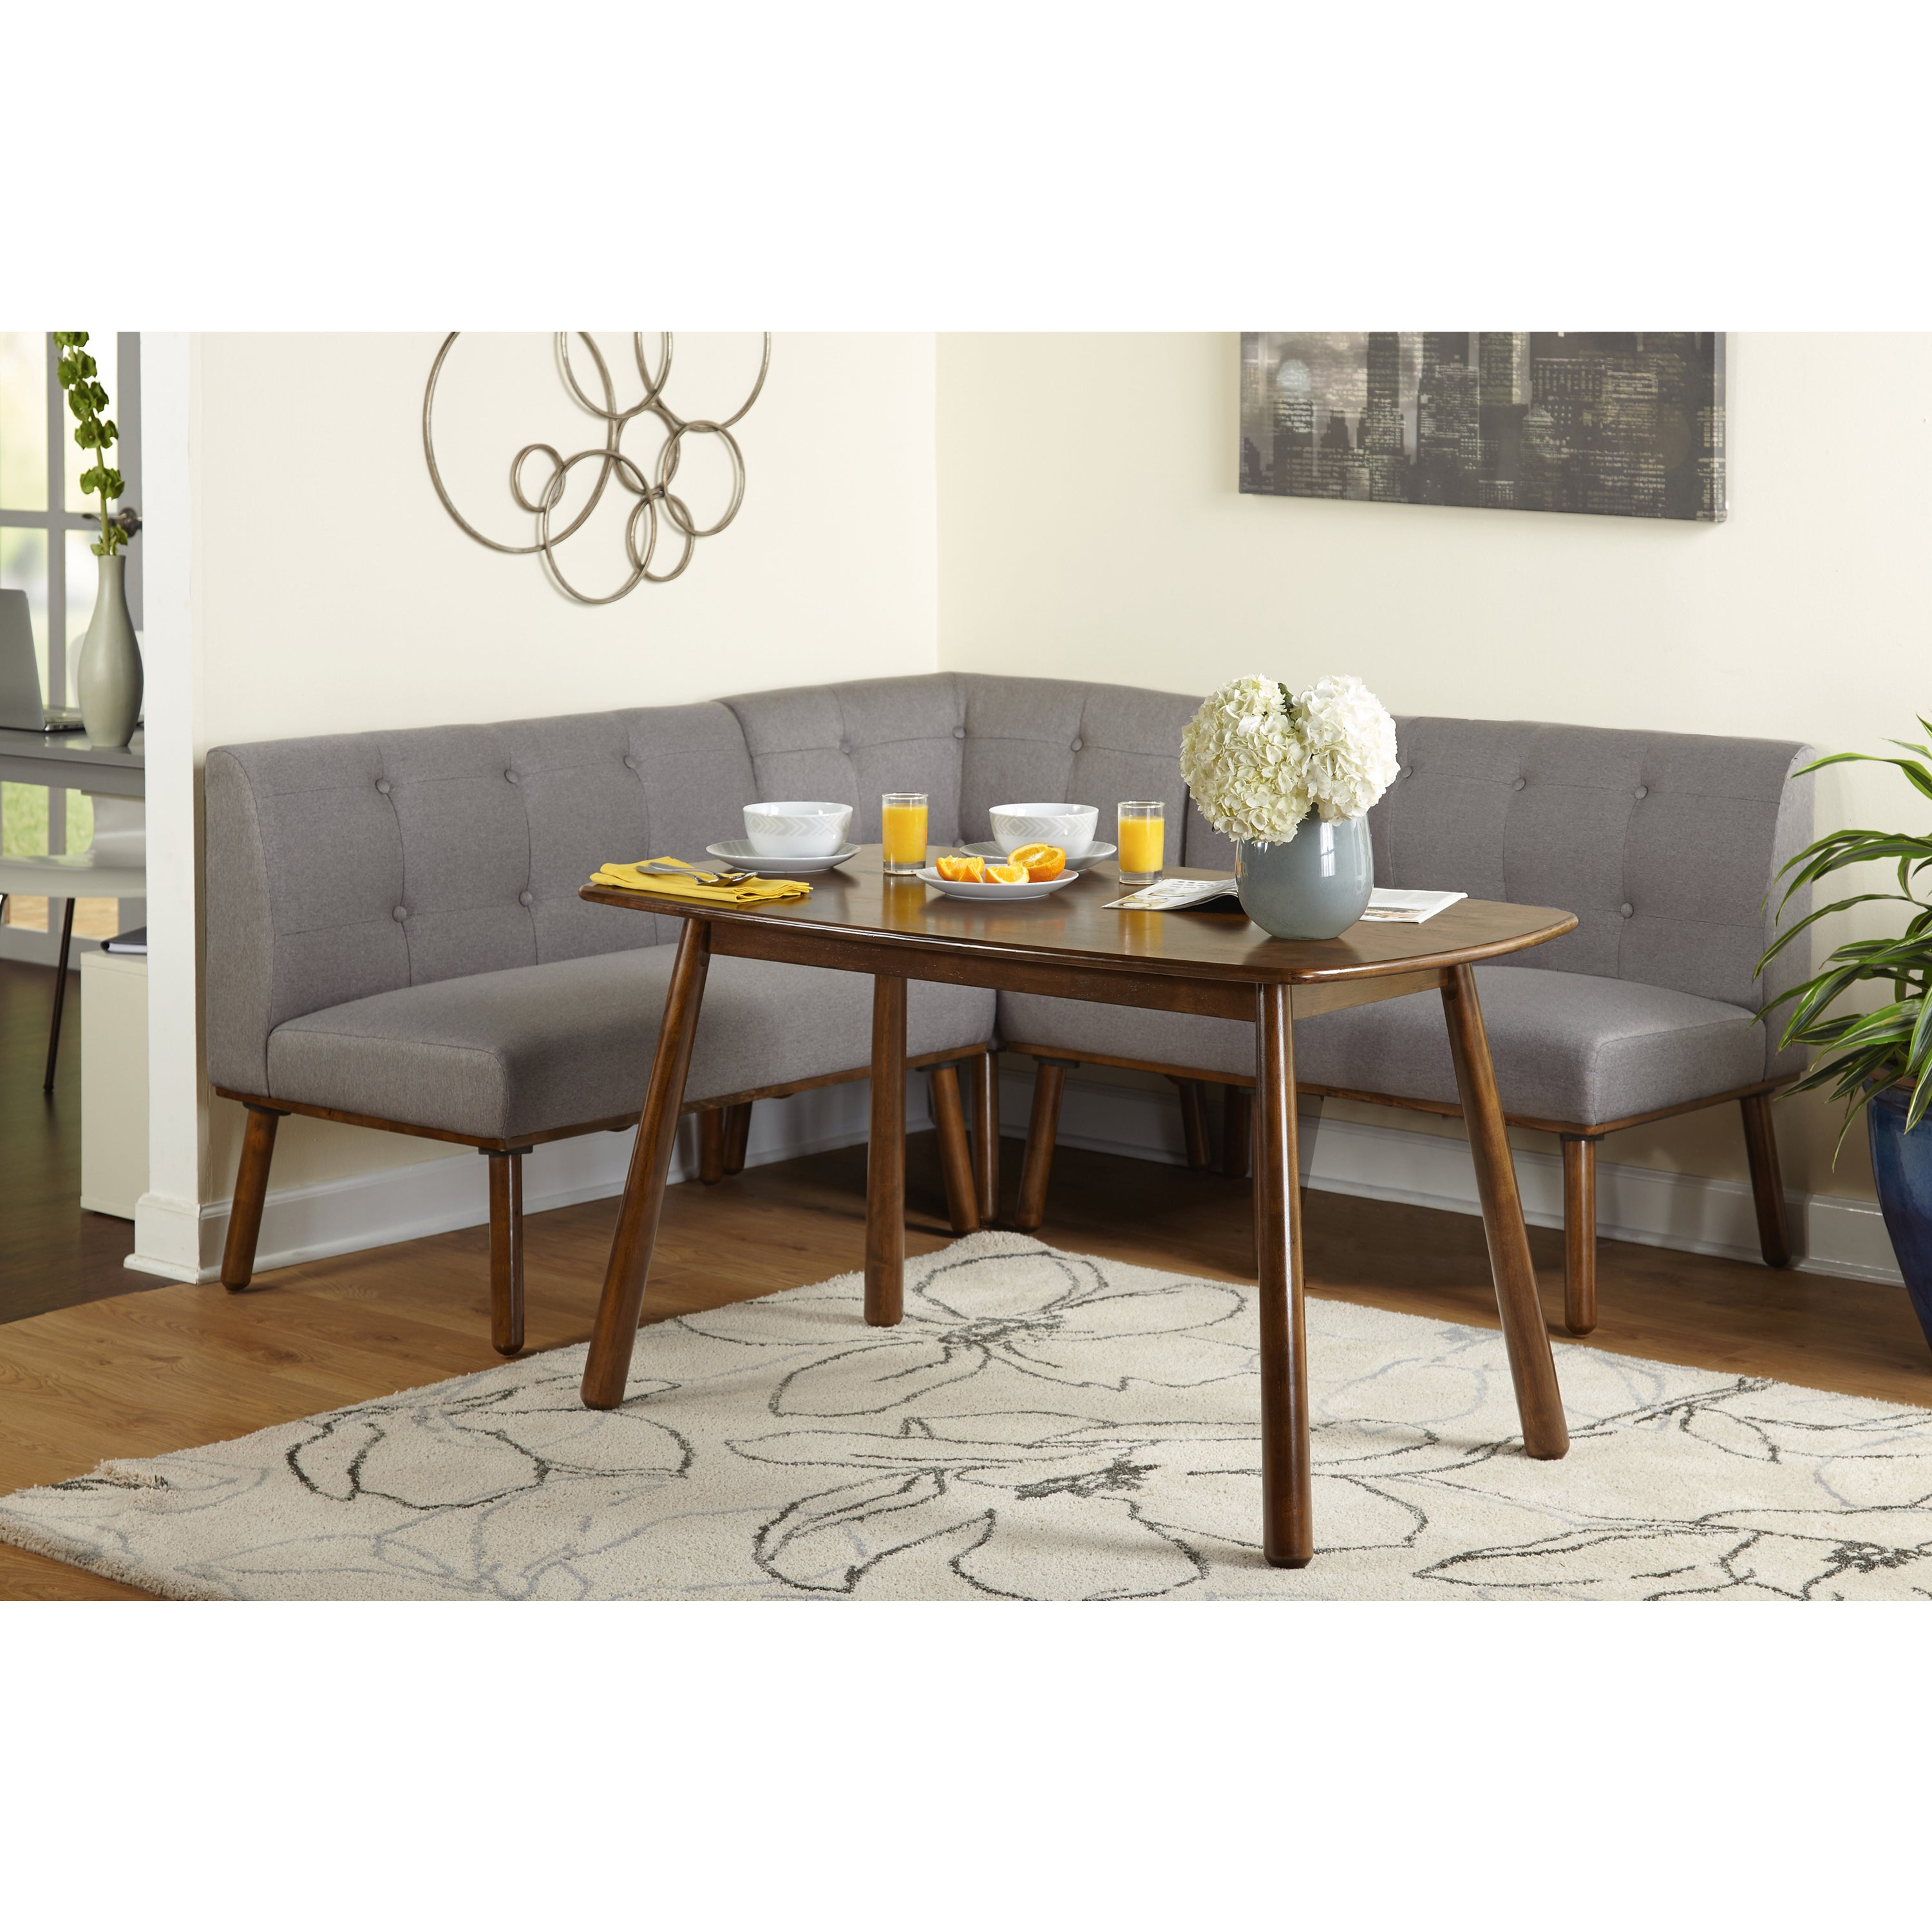 Inspiration about Well Liked Maloney 3 Piece Breakfast Nook Dining Sets Intended For Shop Simple Living 4 Piece Playmate Nook Dining Set – On Sale – Free (#3 of 20)